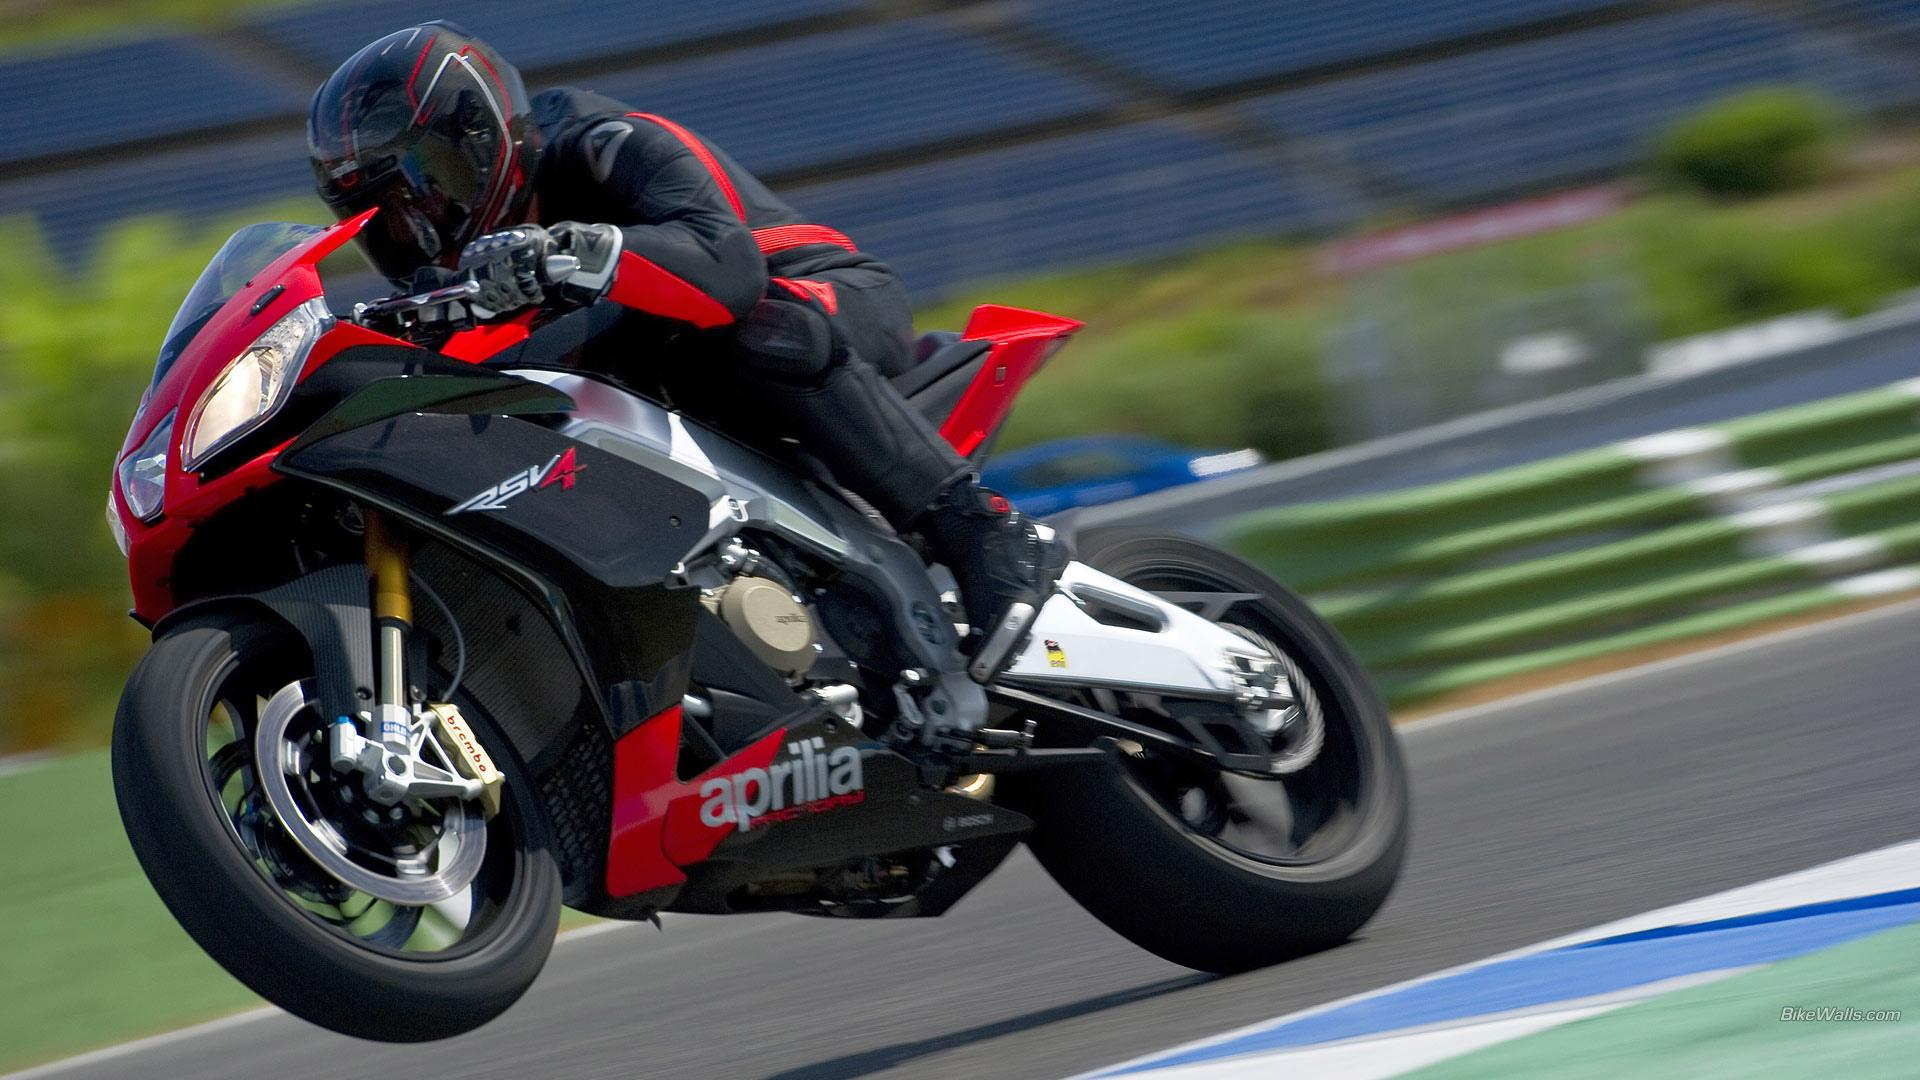 Aprilia RSV4 wallpapers HD quality